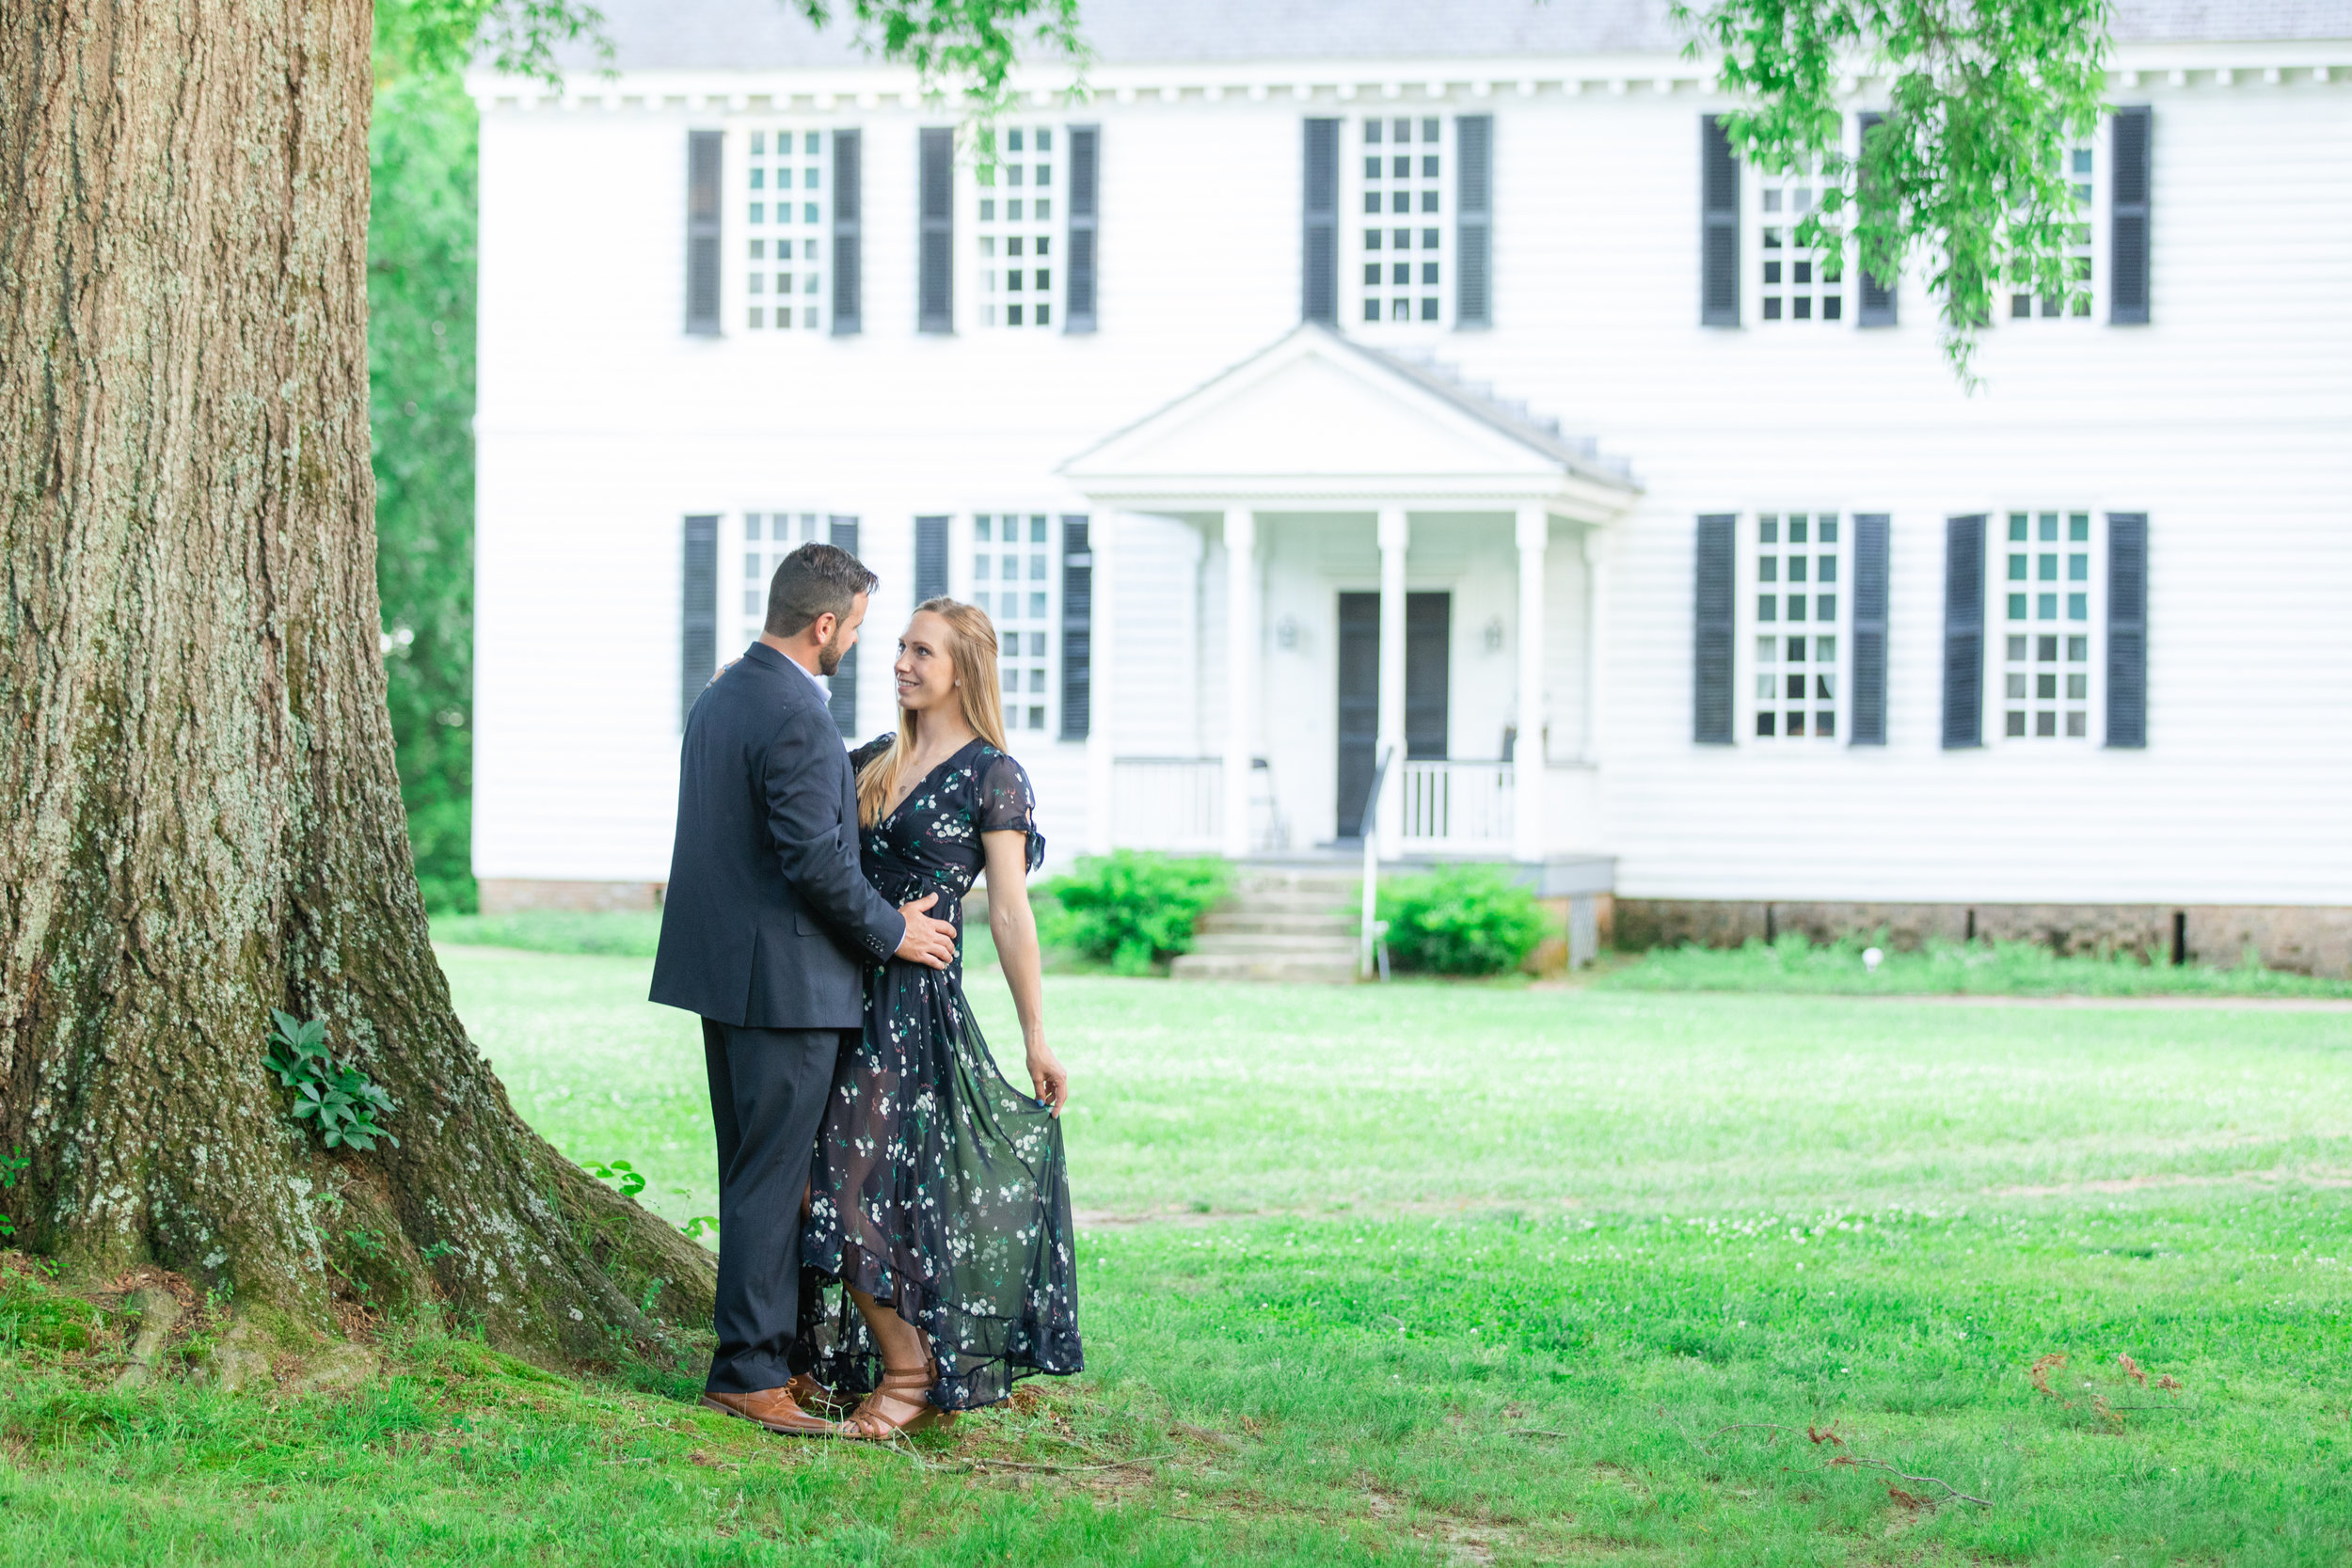 mjmp tuckahoe plantation engagement session photo-30.jpg